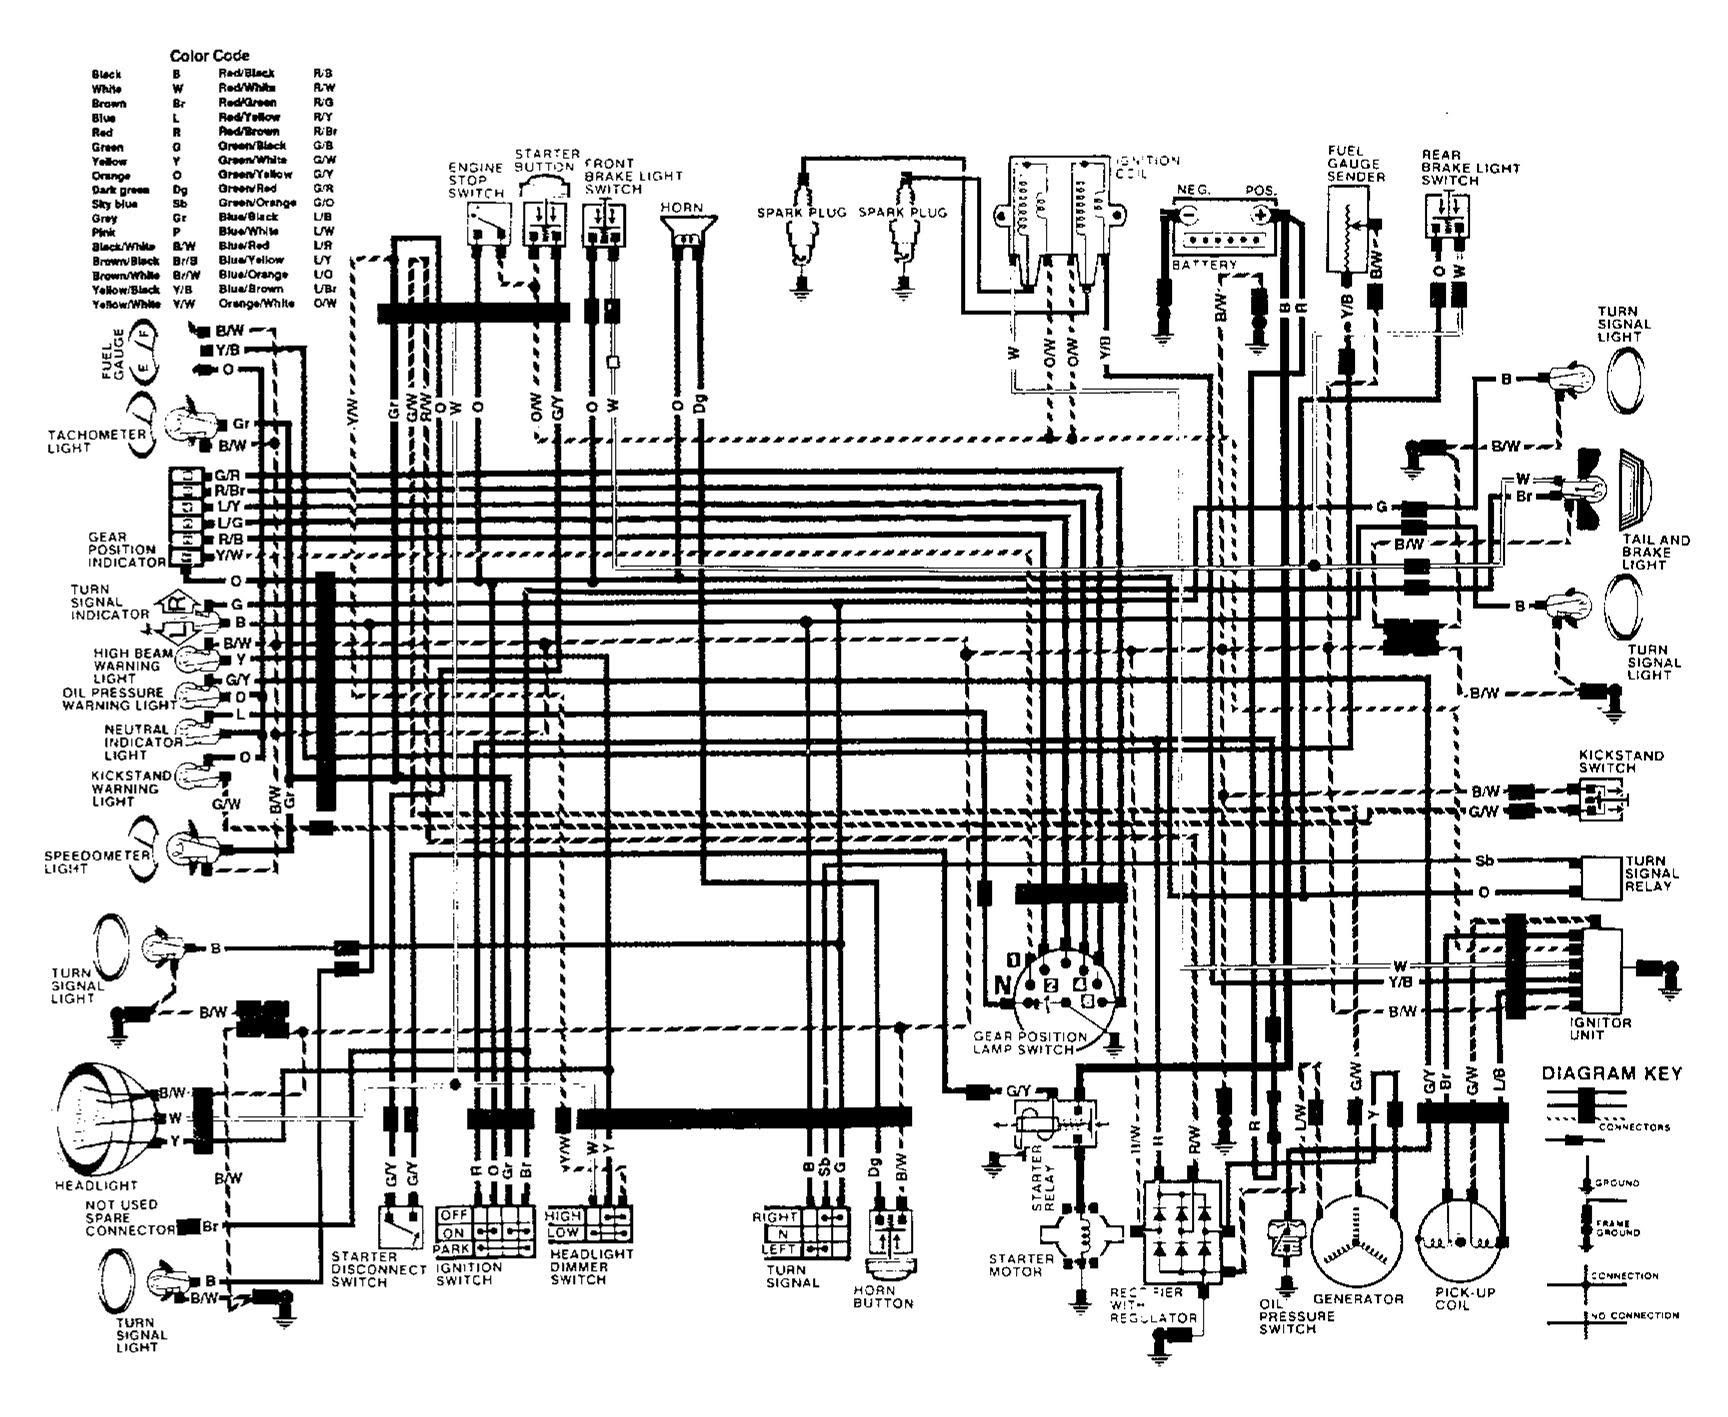 wiring diagram for gs450 schematics and wiring diagrams gs450 wiring diagram diagrams base